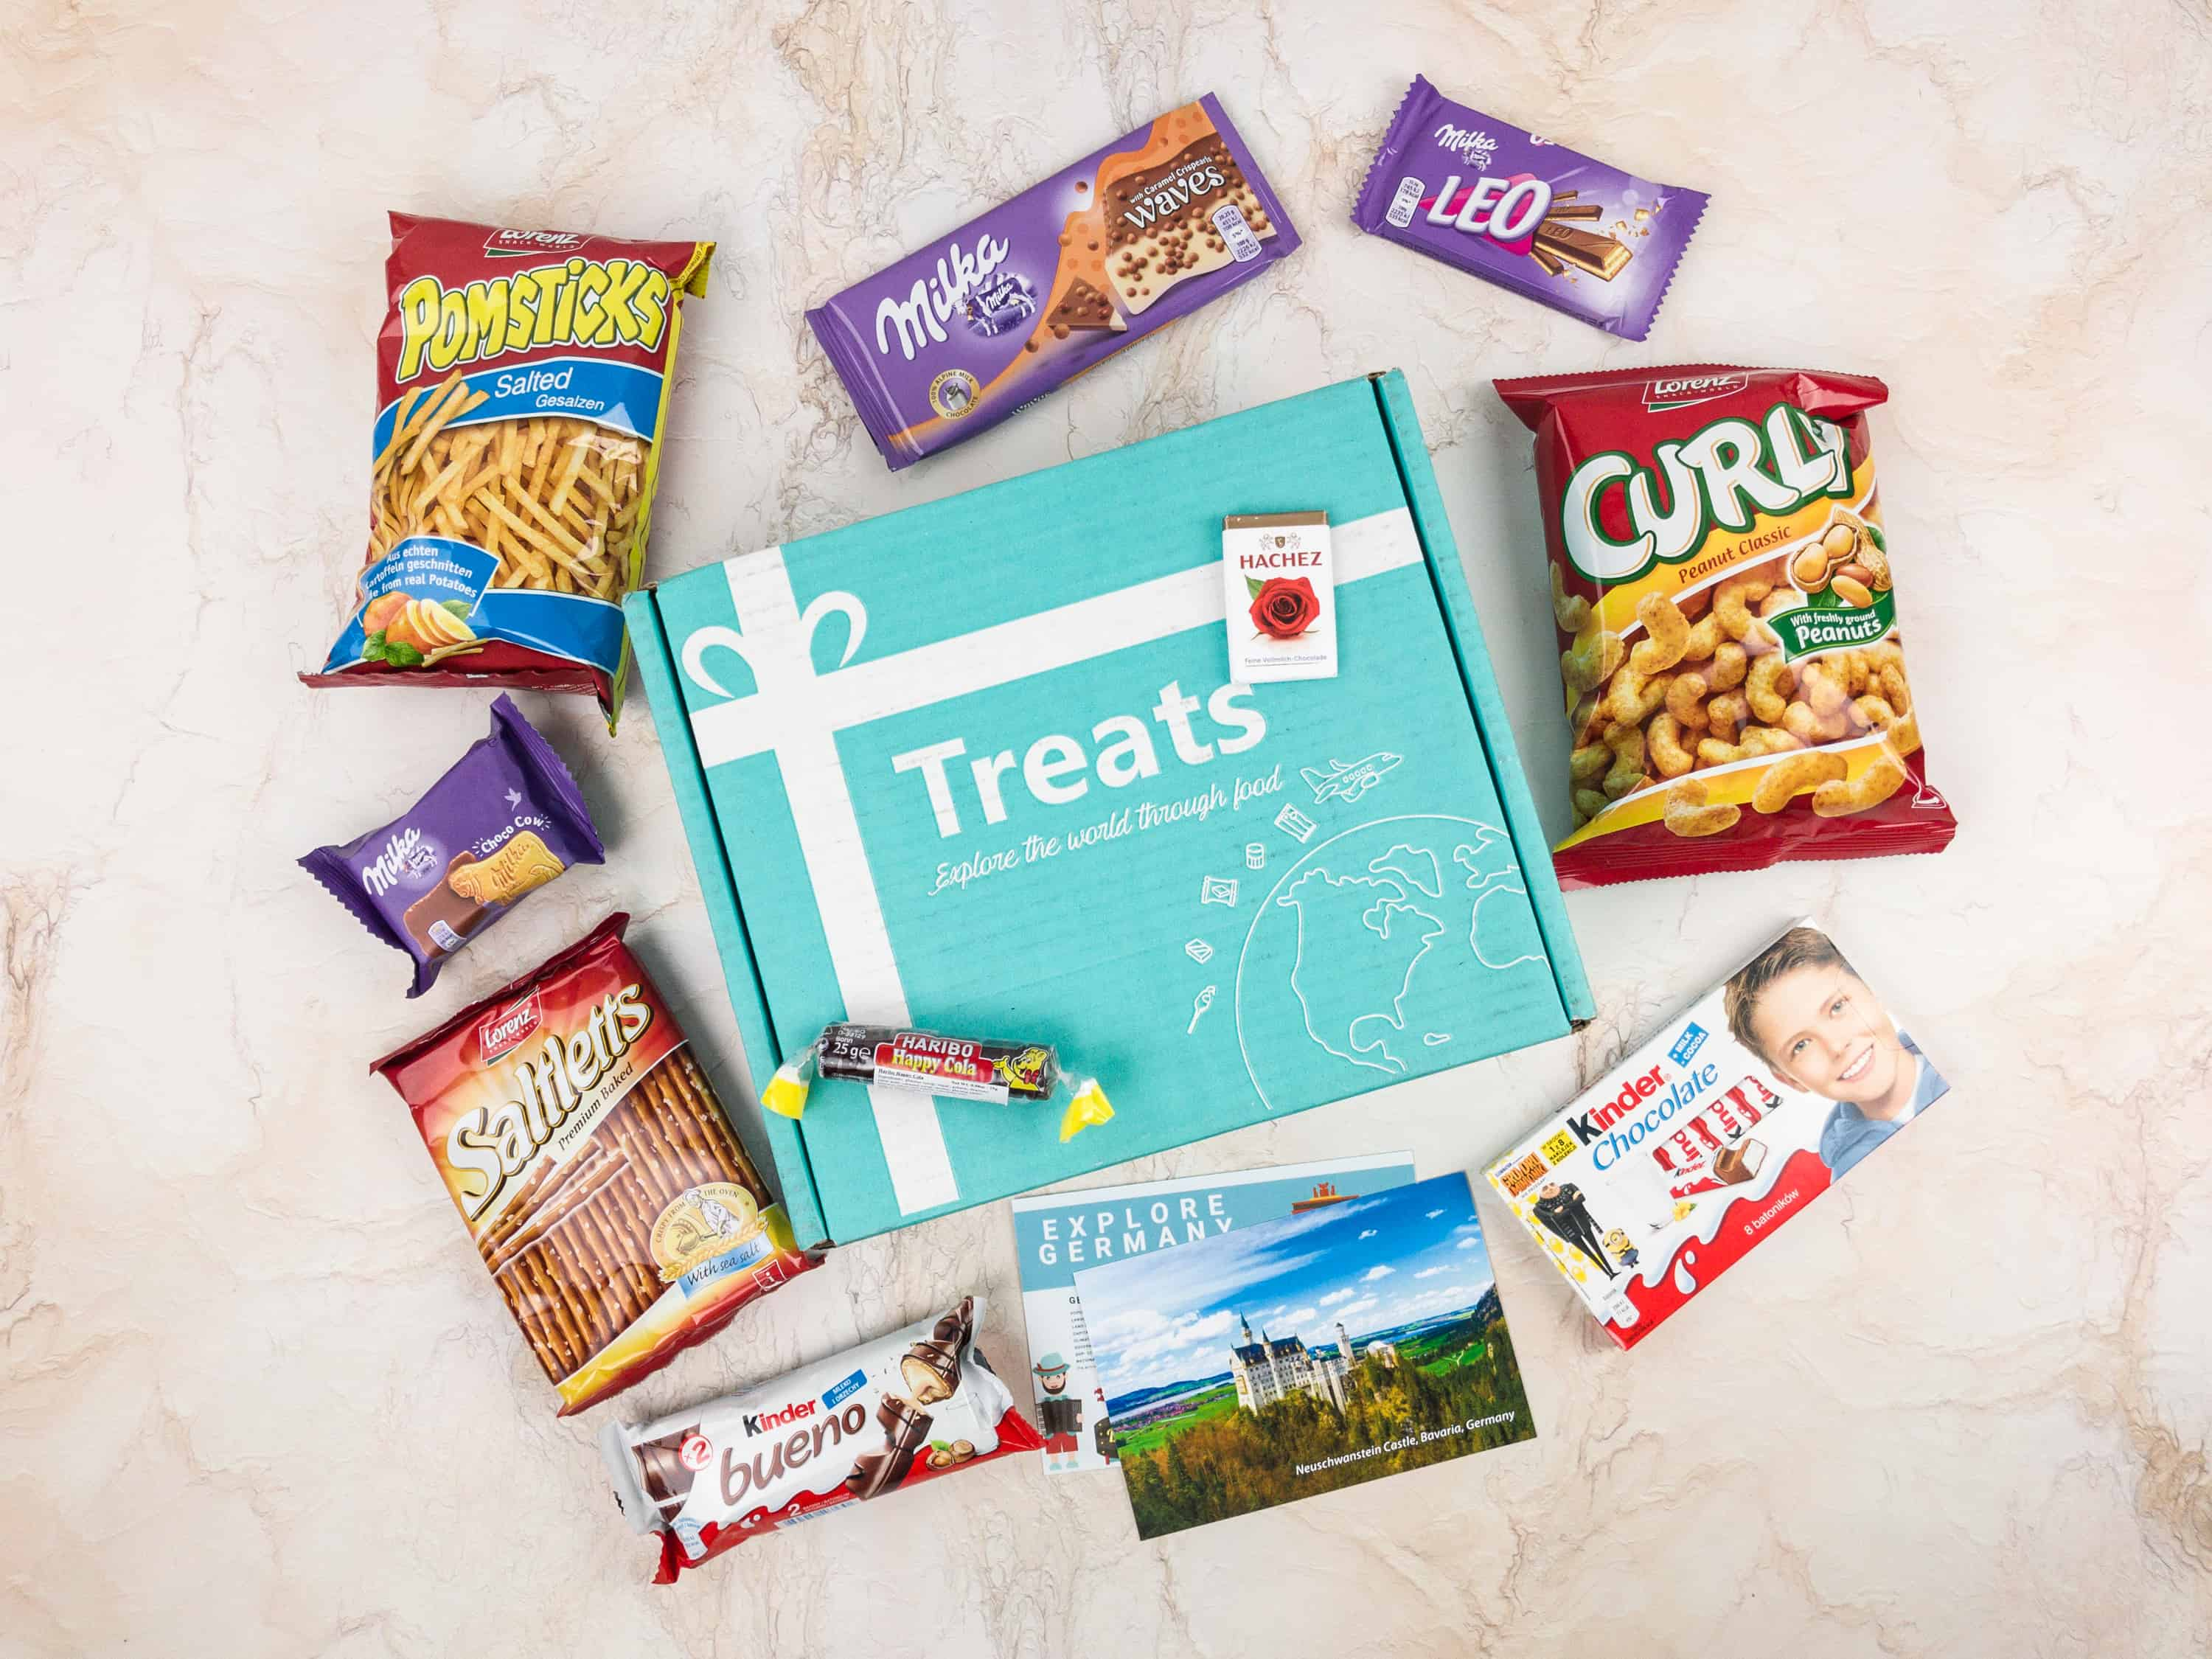 Treats Box January 2018 Review & Coupon – Germany